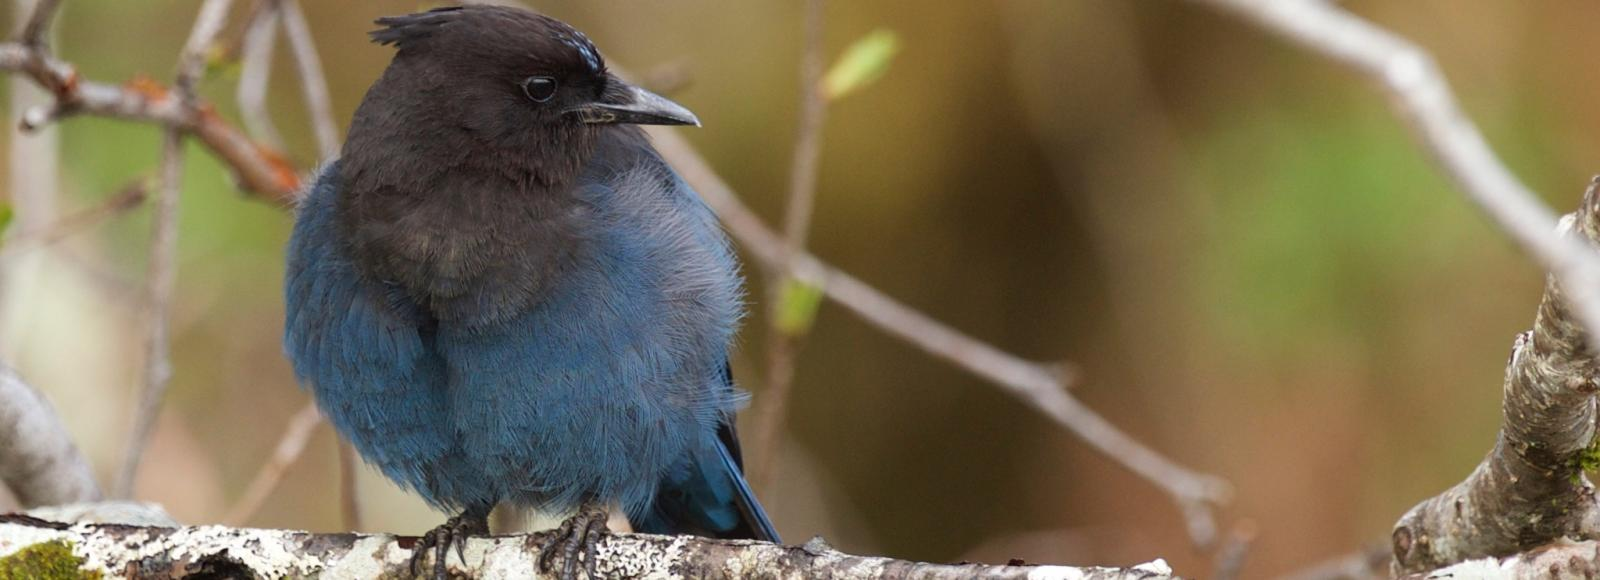 Steller's Jay, a large songbird with blue underparts and black upper parts, on a branch